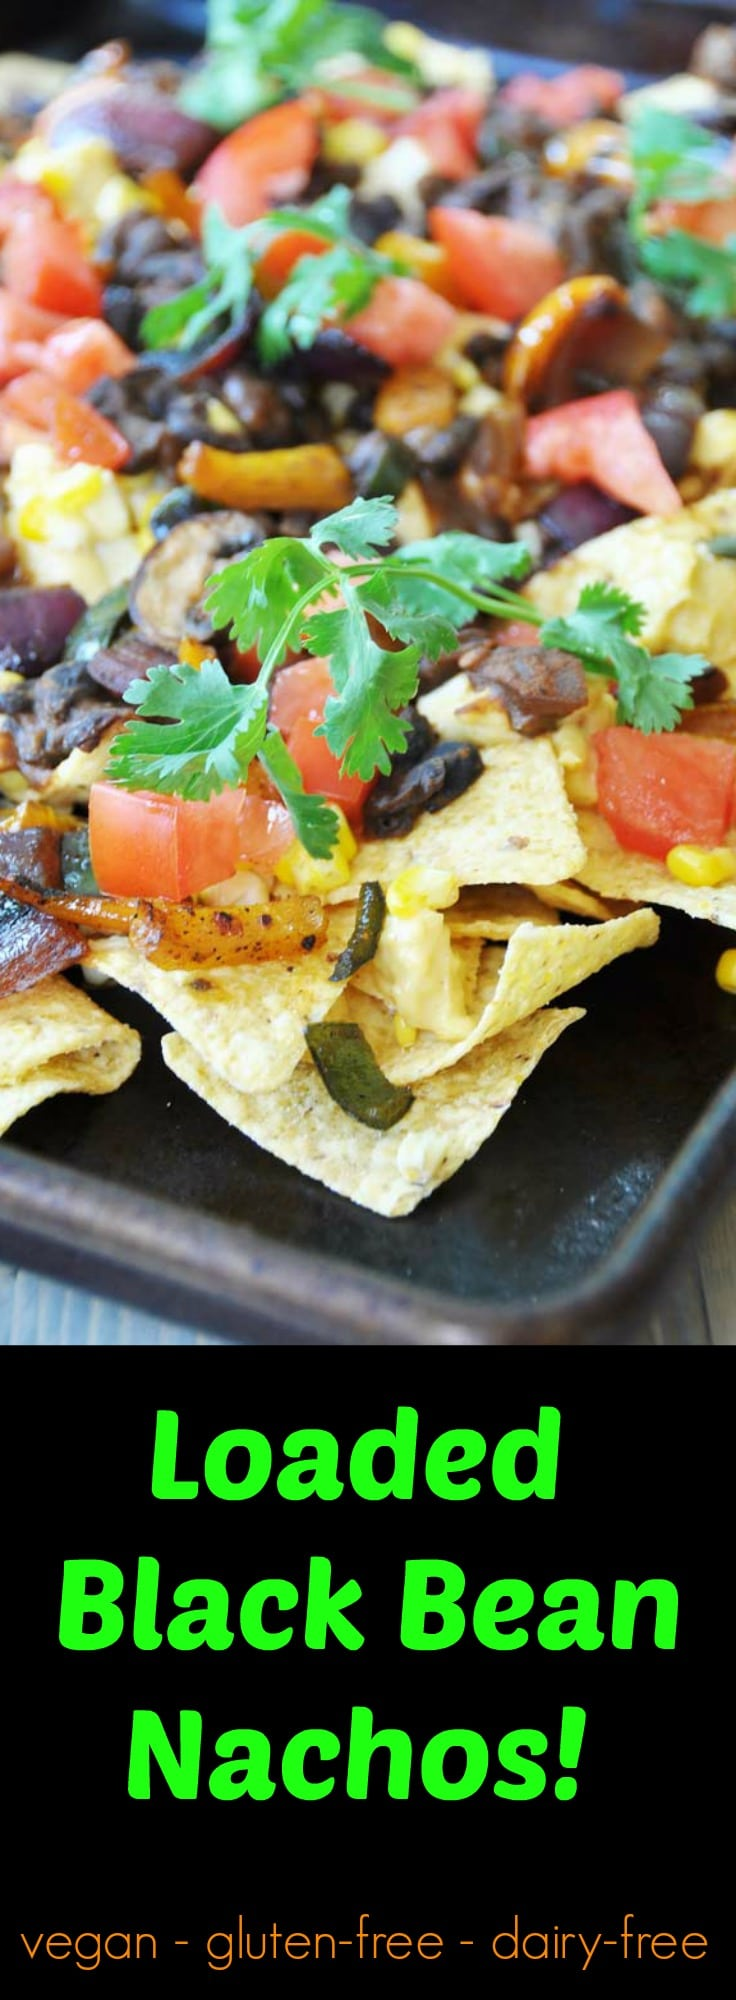 Loaded black bean and vegetable nachos! The perfect game day appetizer. vegan, gluten-free, and dairy-free